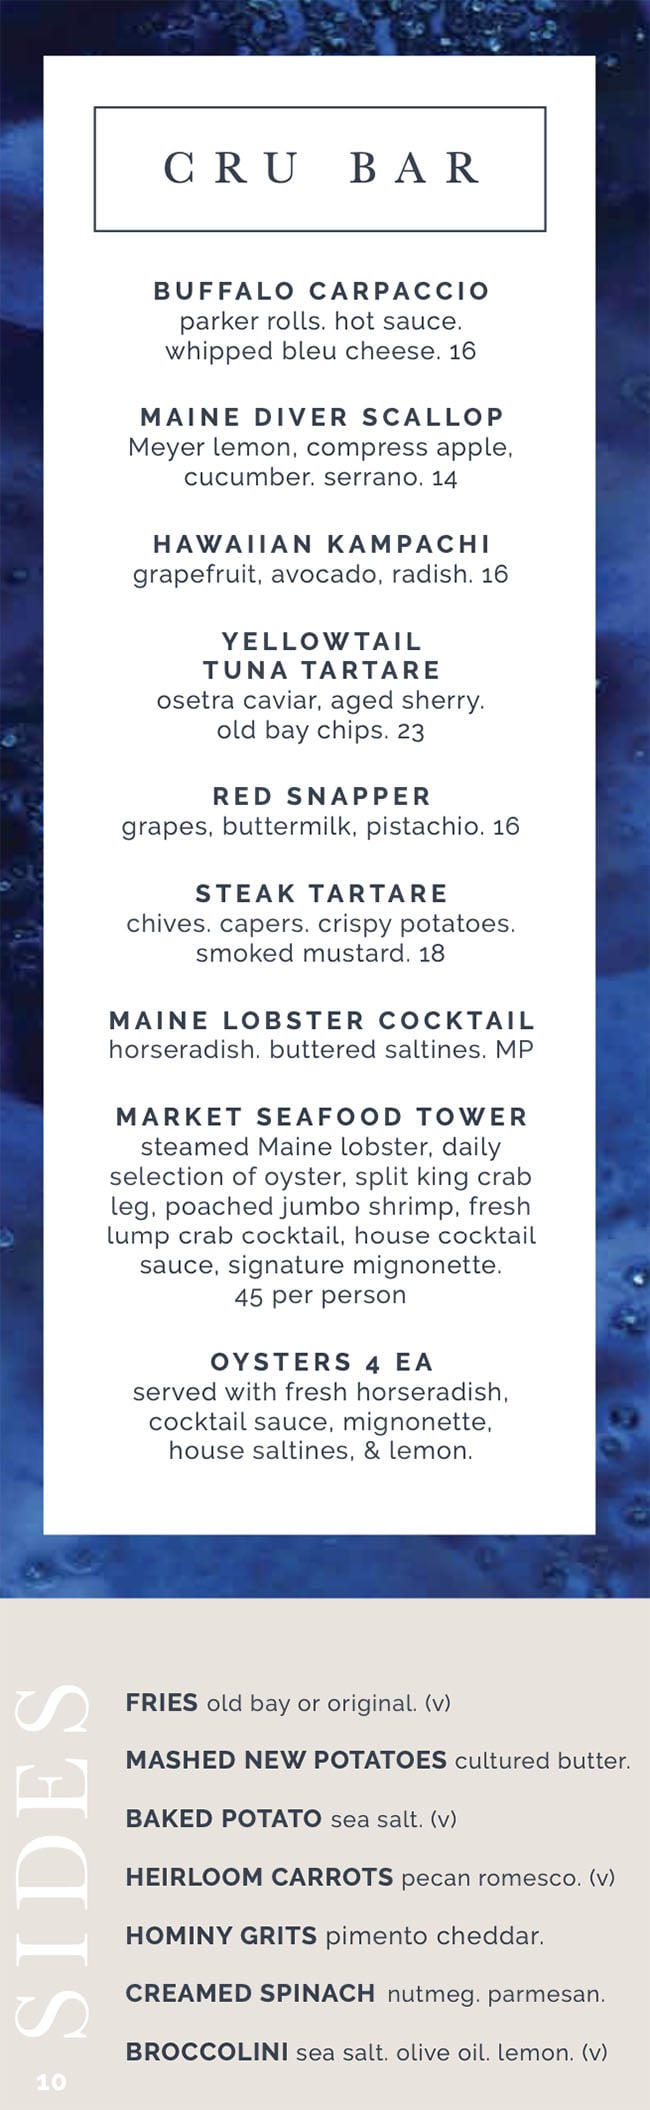 RIME Seafood And Steak menu - cru bar, sides